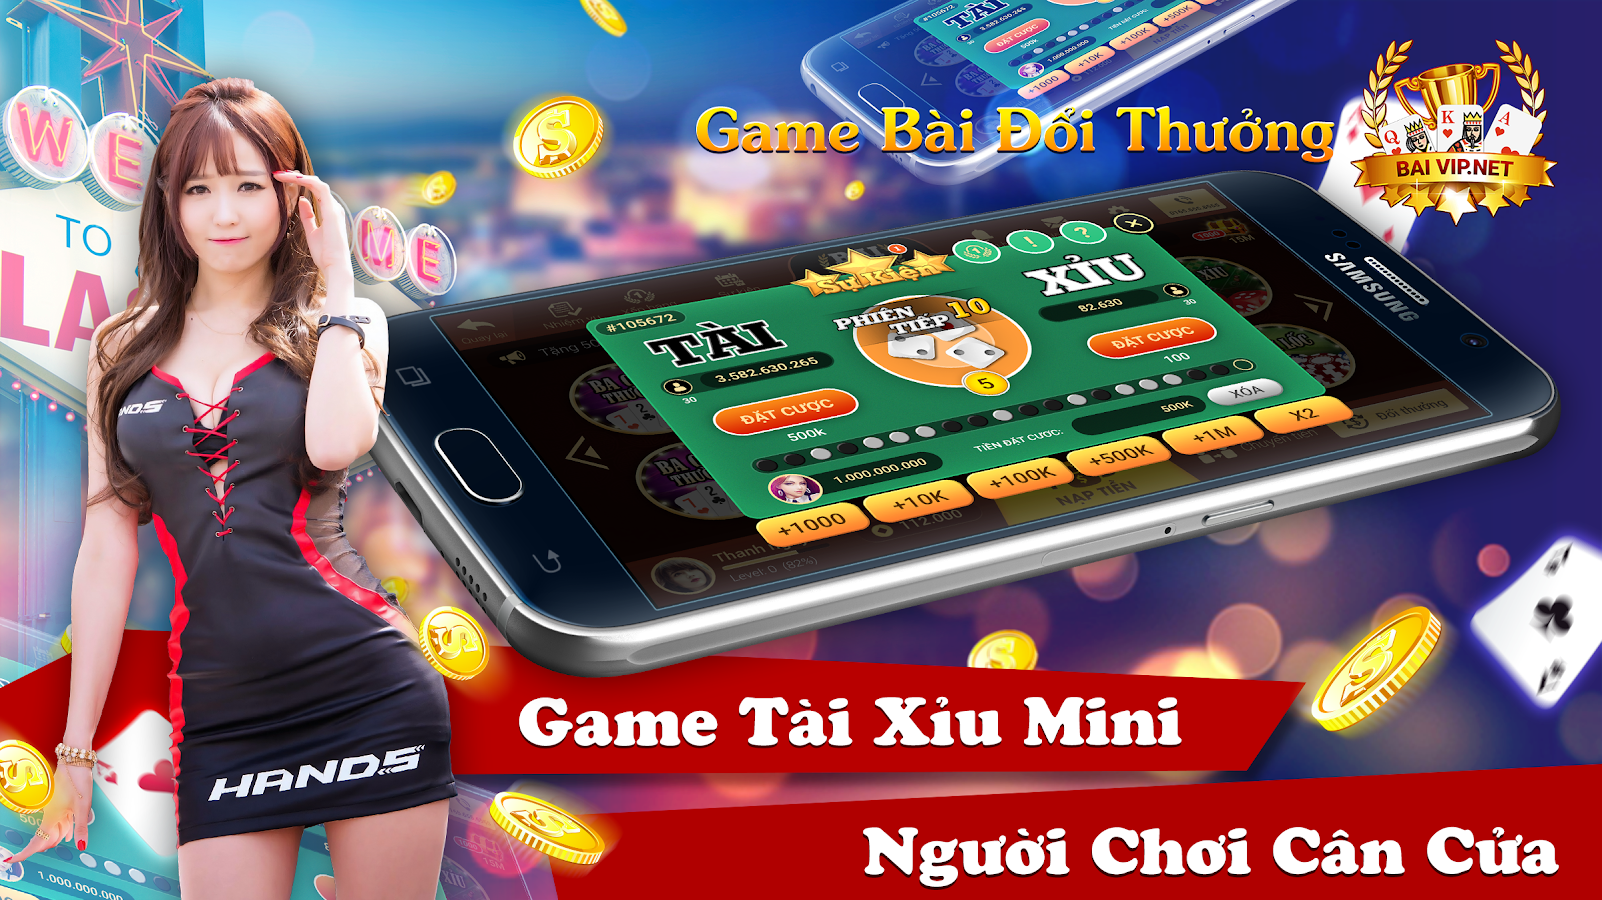 Game Bài Vip Online Screenshot 12